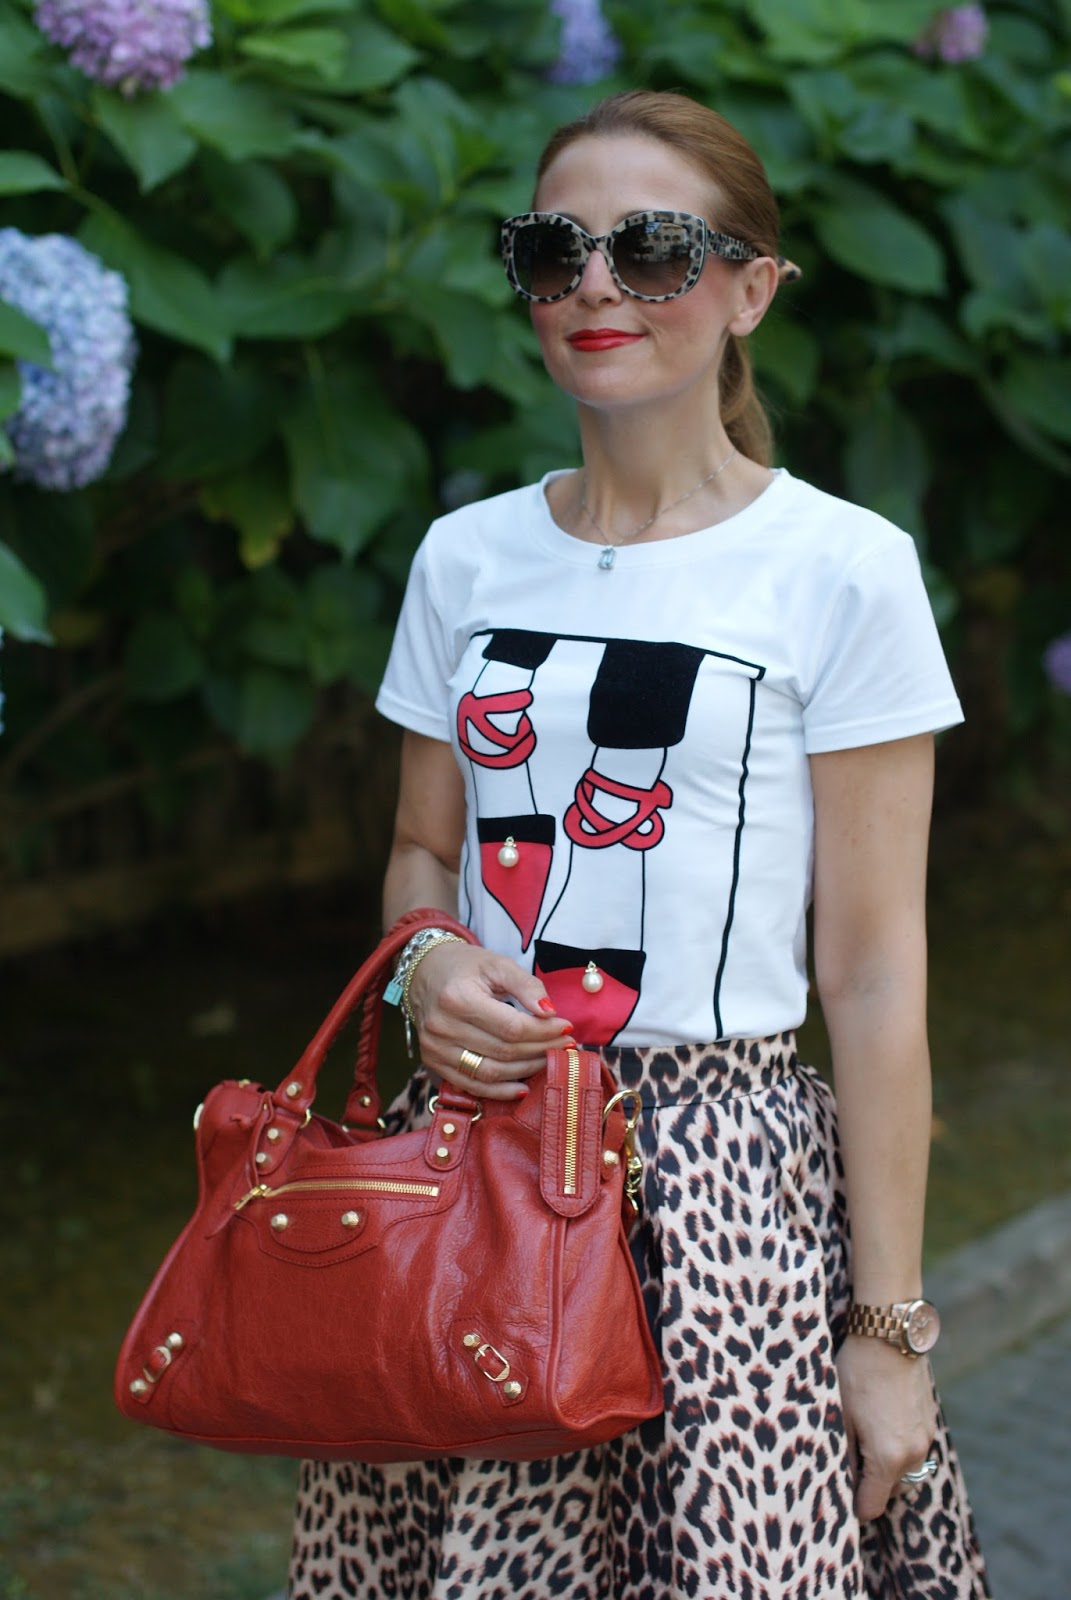 Leopard print is the new neutral with Balenciaga City, Dolce & Gabbana sunglasses found on Giarre.com, leopard print midi skirt on Fashion and Cookies fashion blog, fashion blogger style